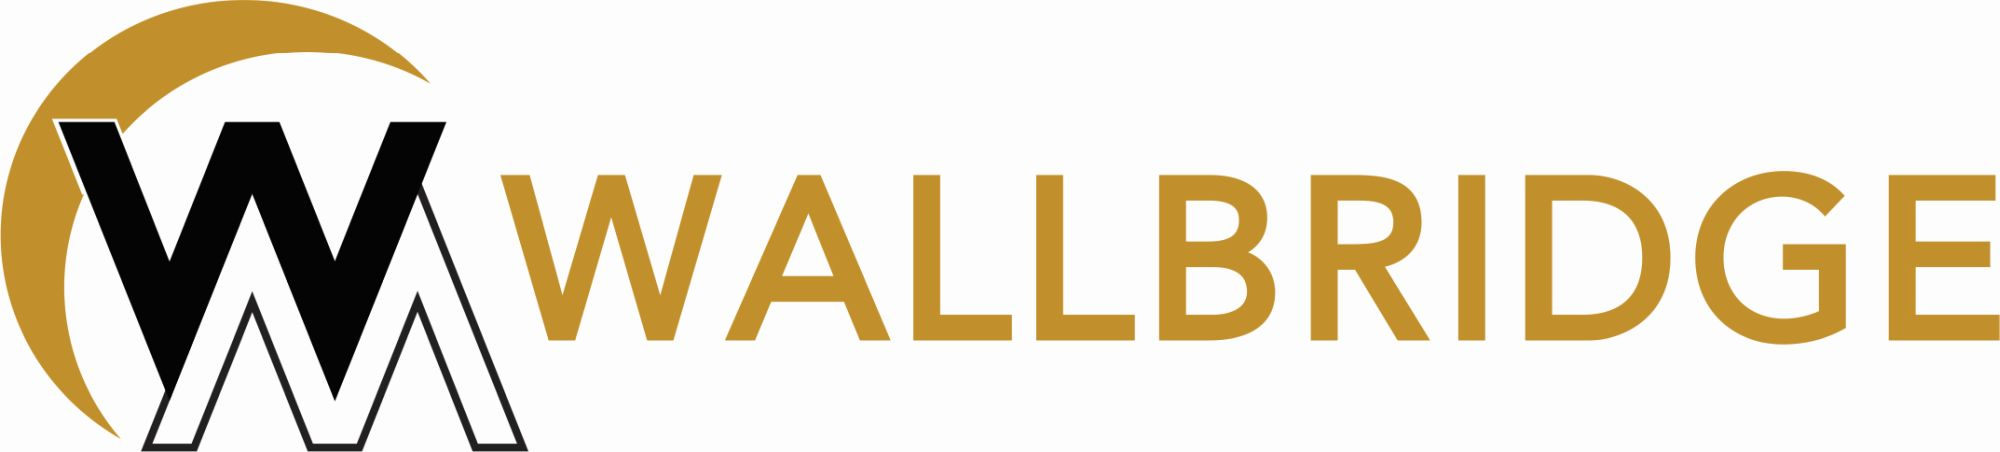 Wallbridge Mining Announces Voting Results from Annual and Special Meeting of Shareholders